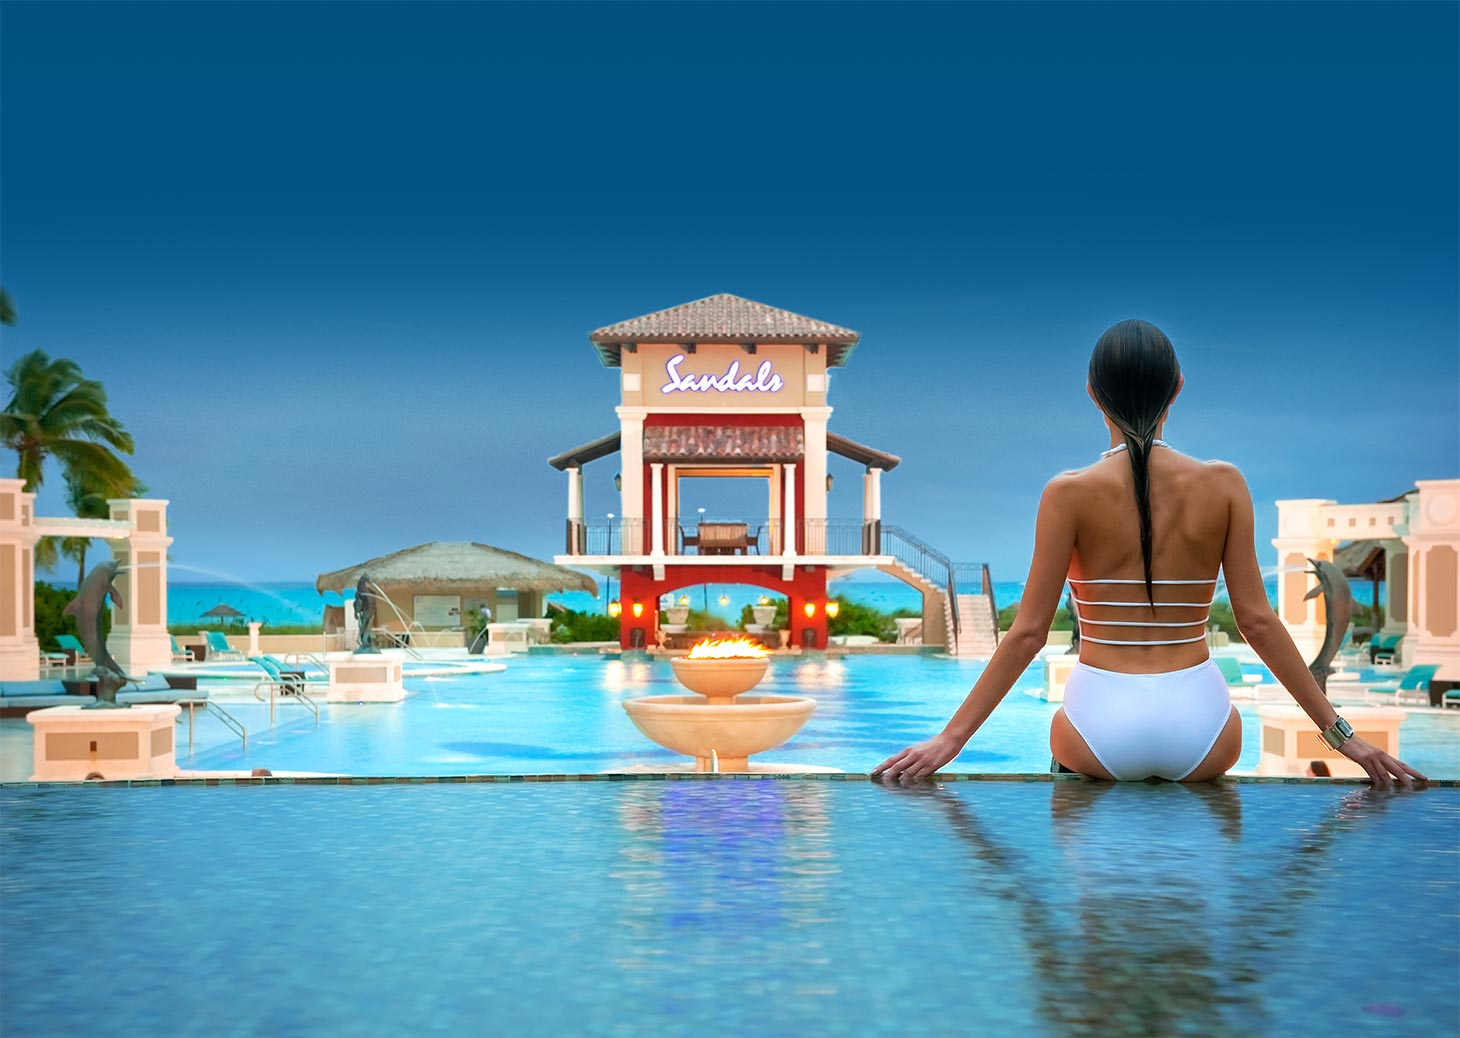 Bahamas All Inclusive >> The Bahamas All Inclusive Resorts Vacations Adults Only Sandals